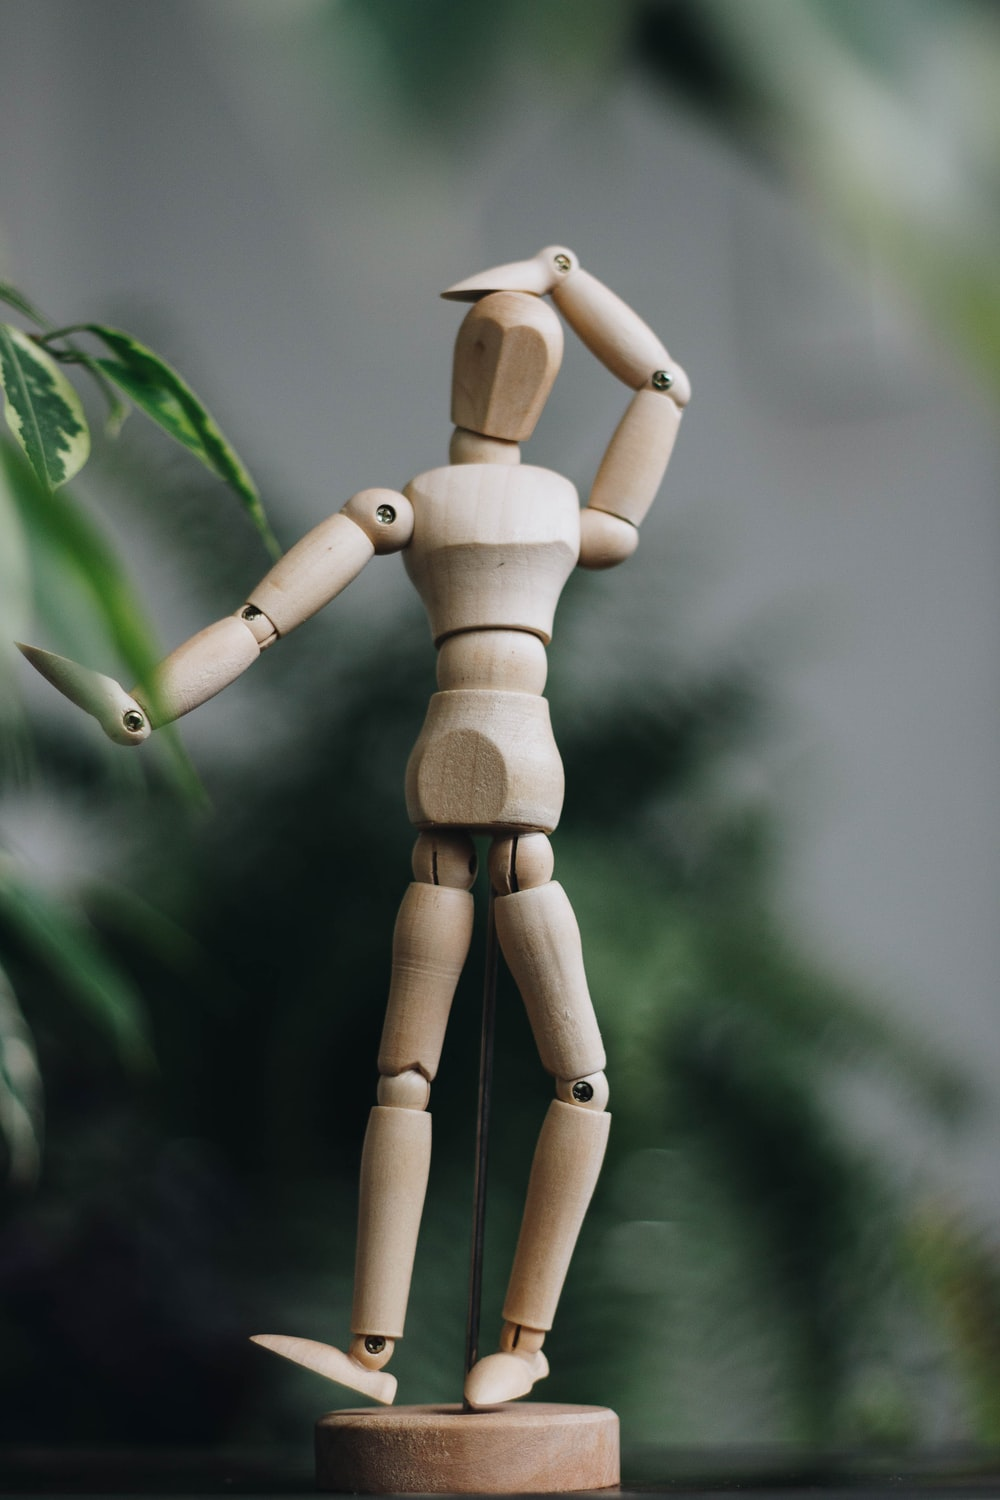 brown wooden human figure on green leaves